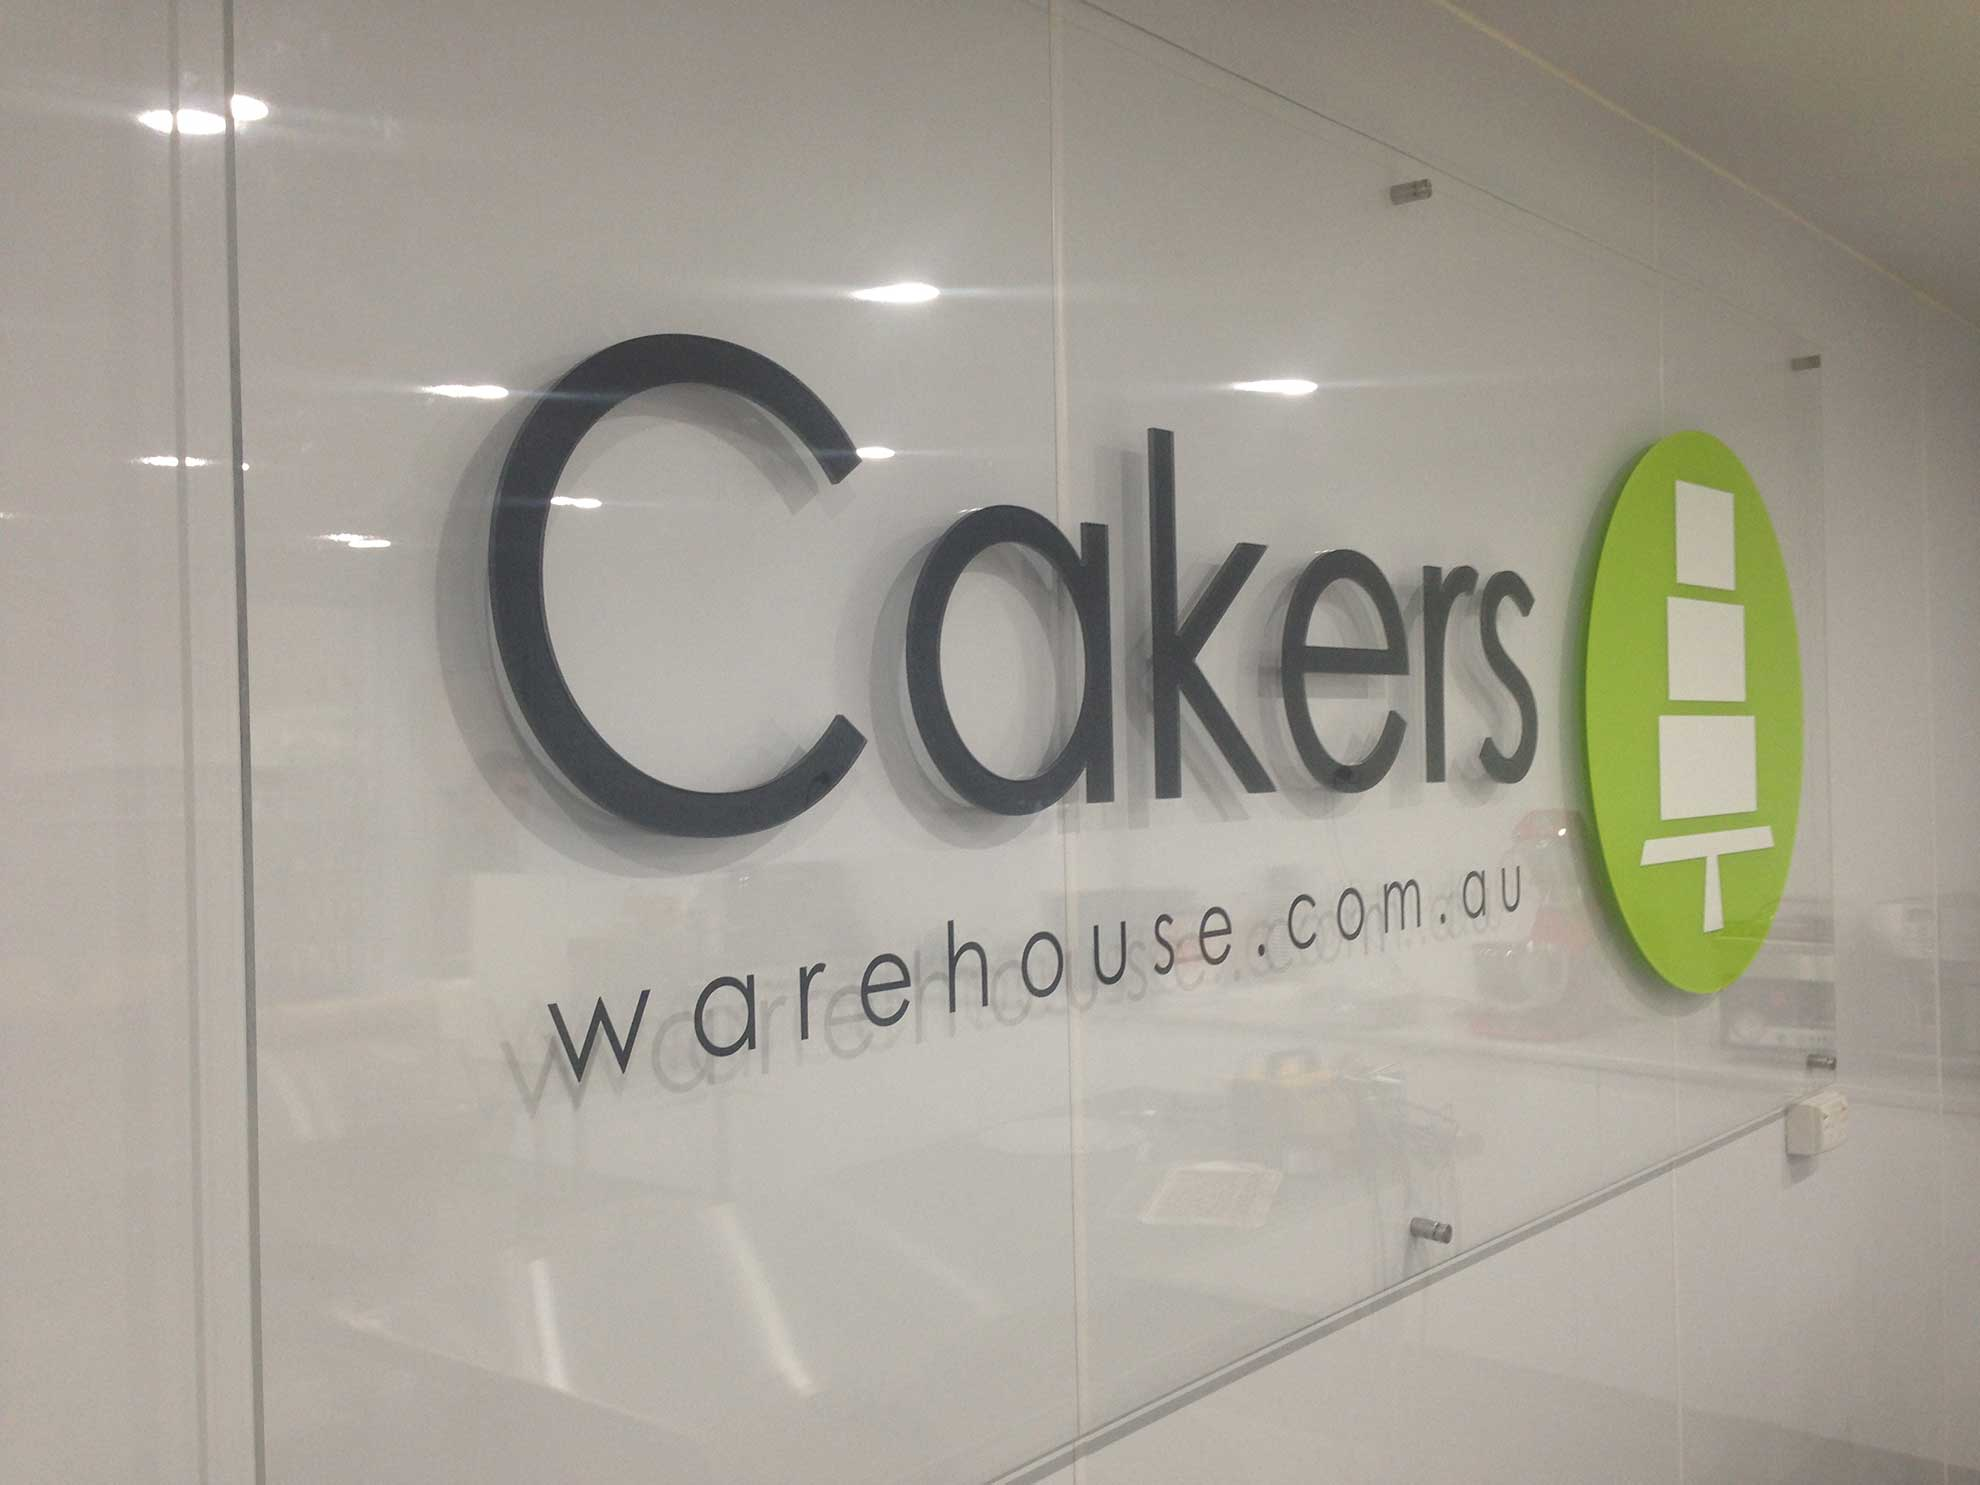 Cakers - Broadcasting Signs Wollongong